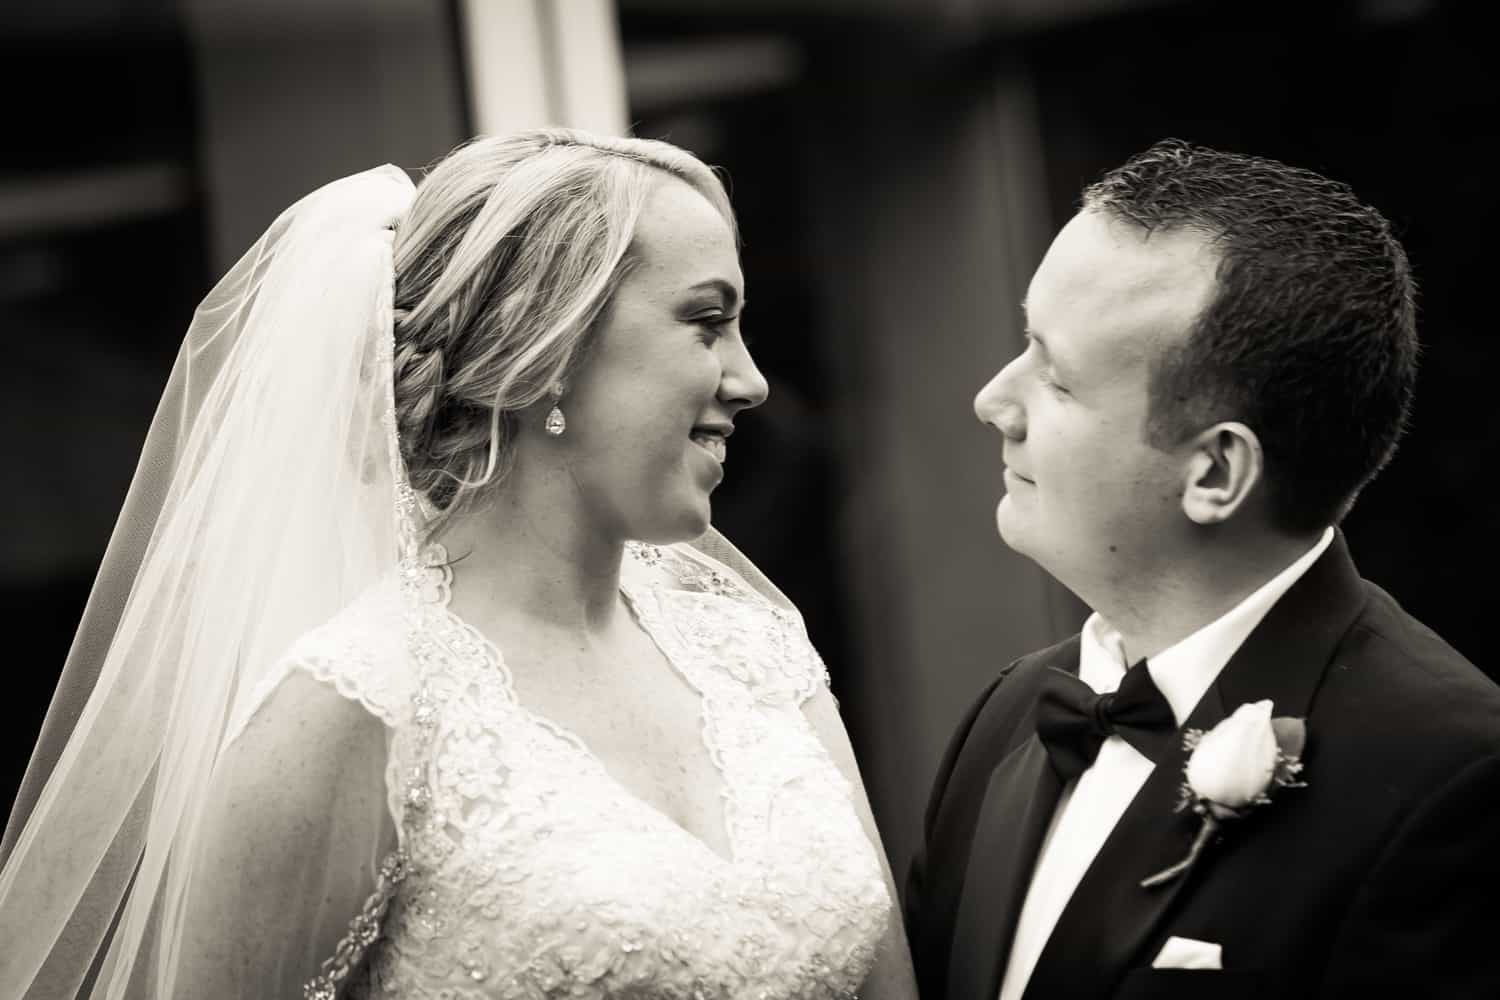 Black and white photo of bride and groom looking at each other